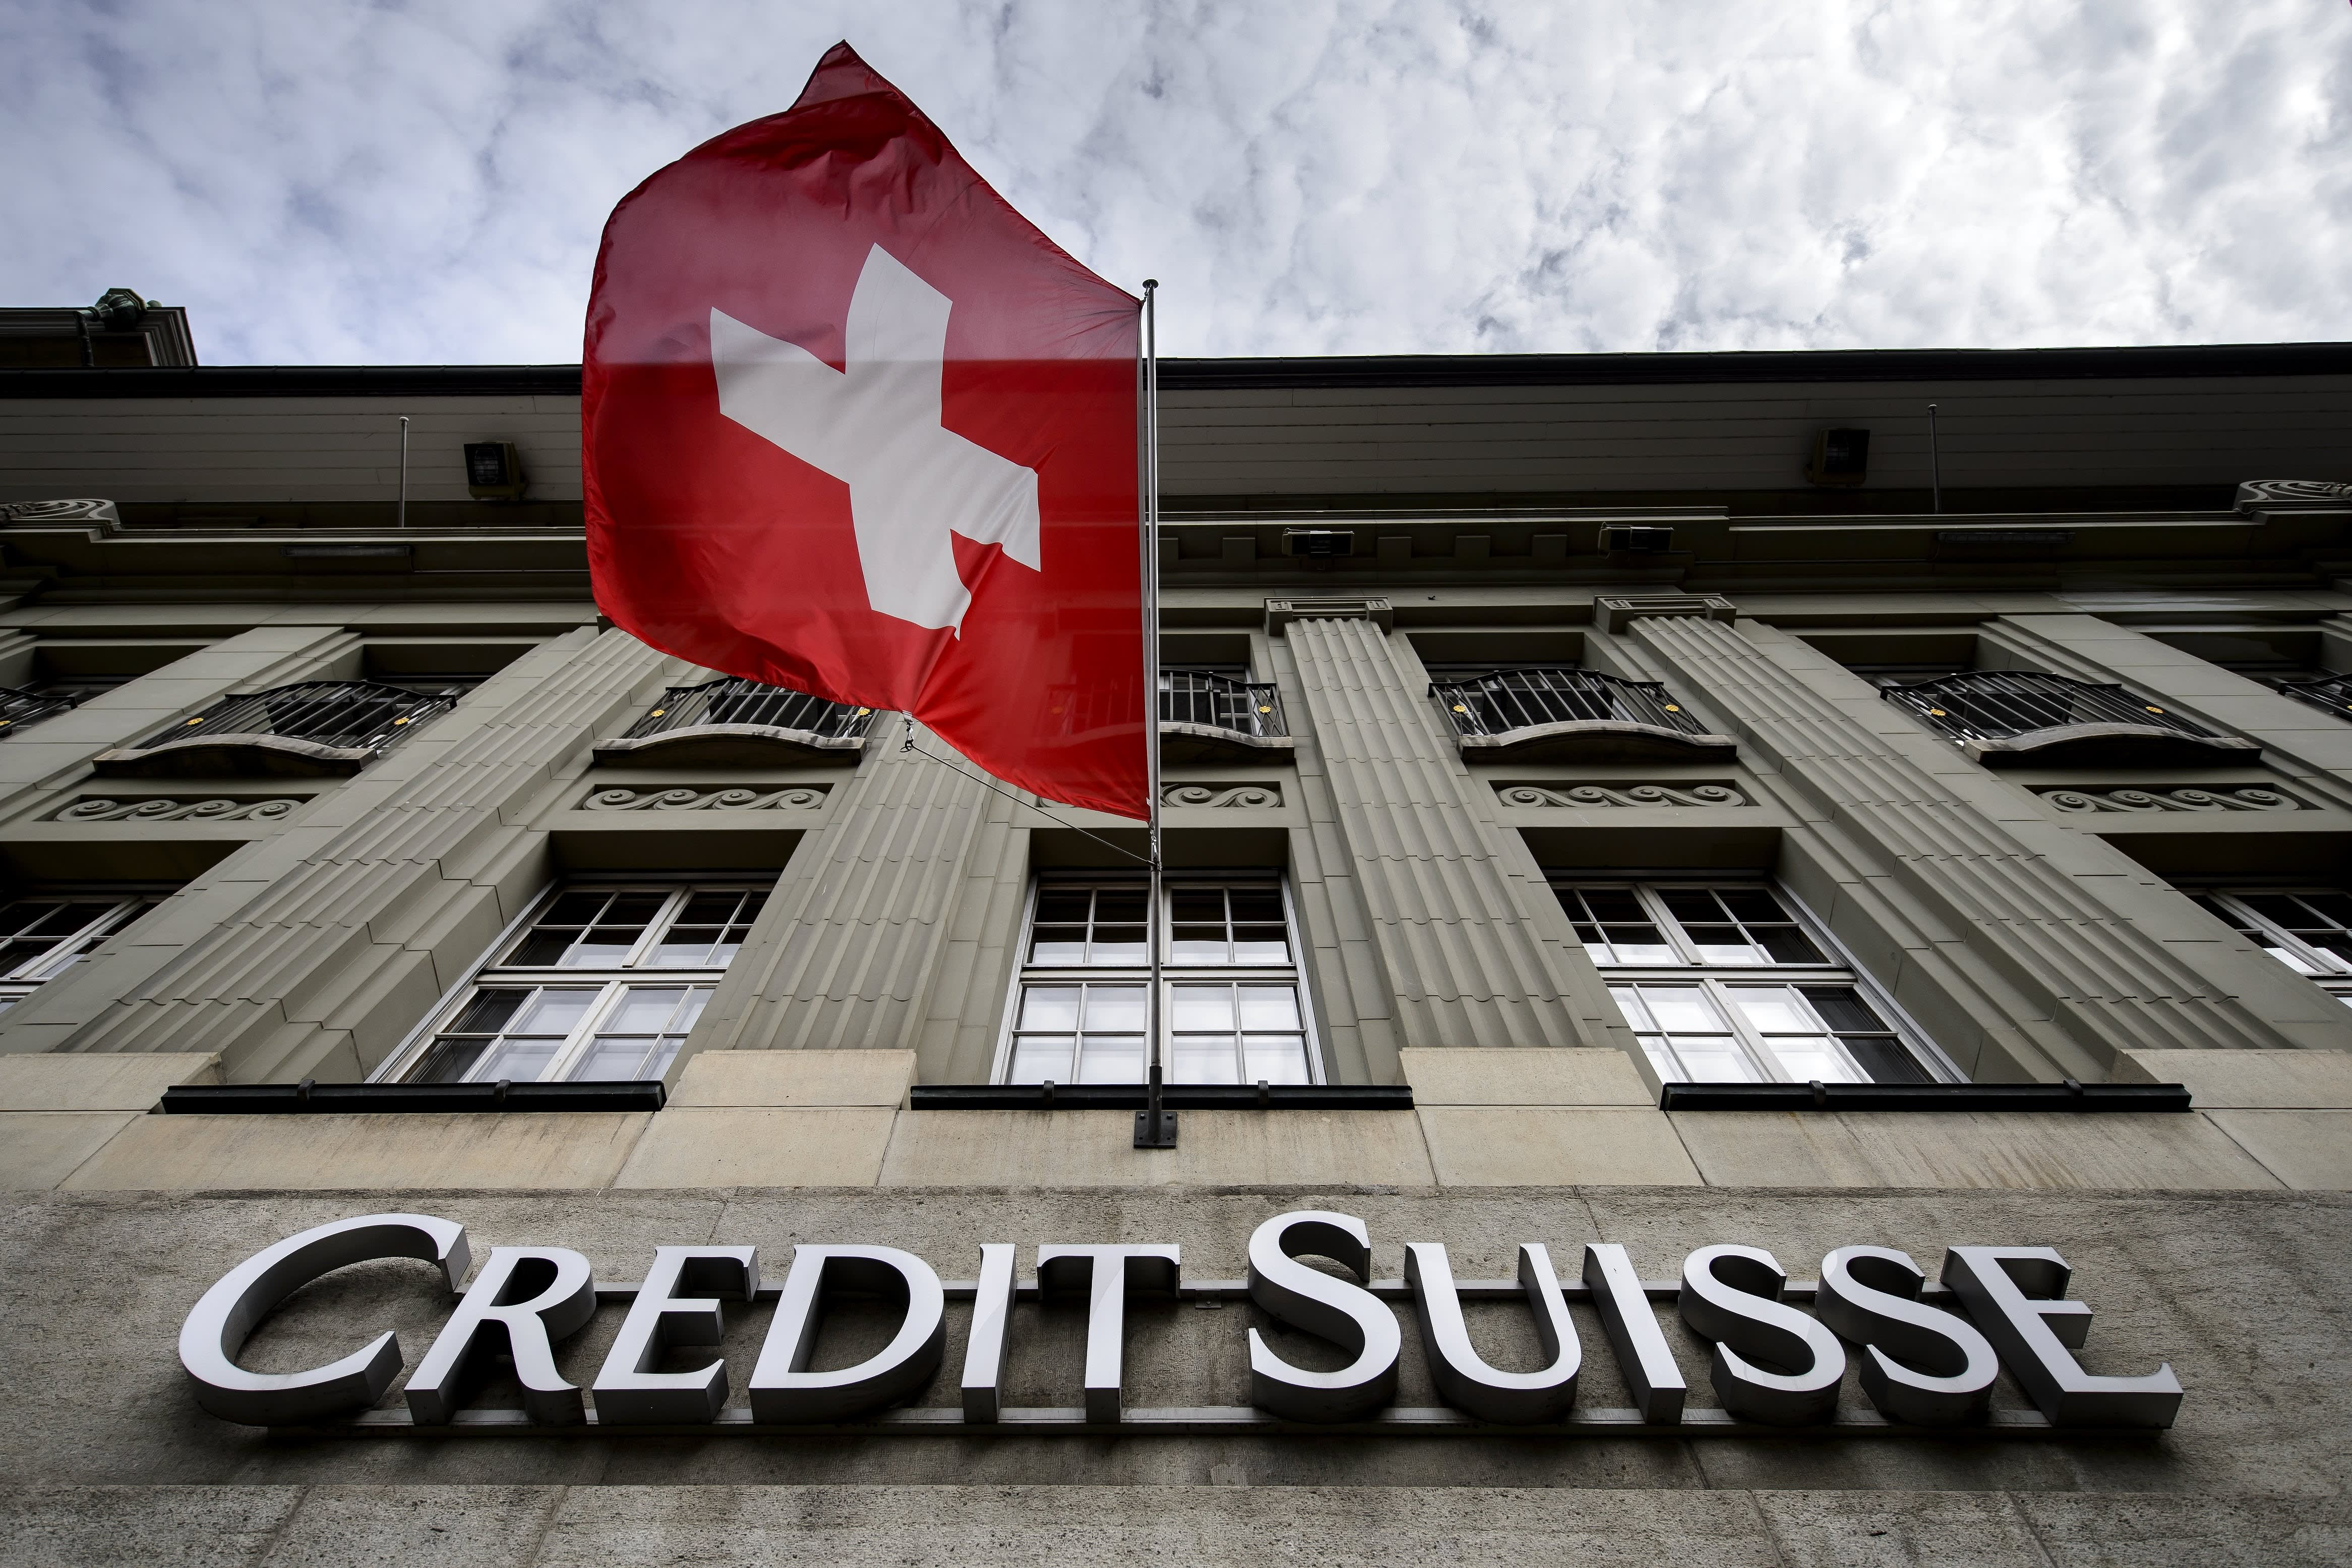 Credit Suisse clears CEO in spying probe, COO Bouee to go